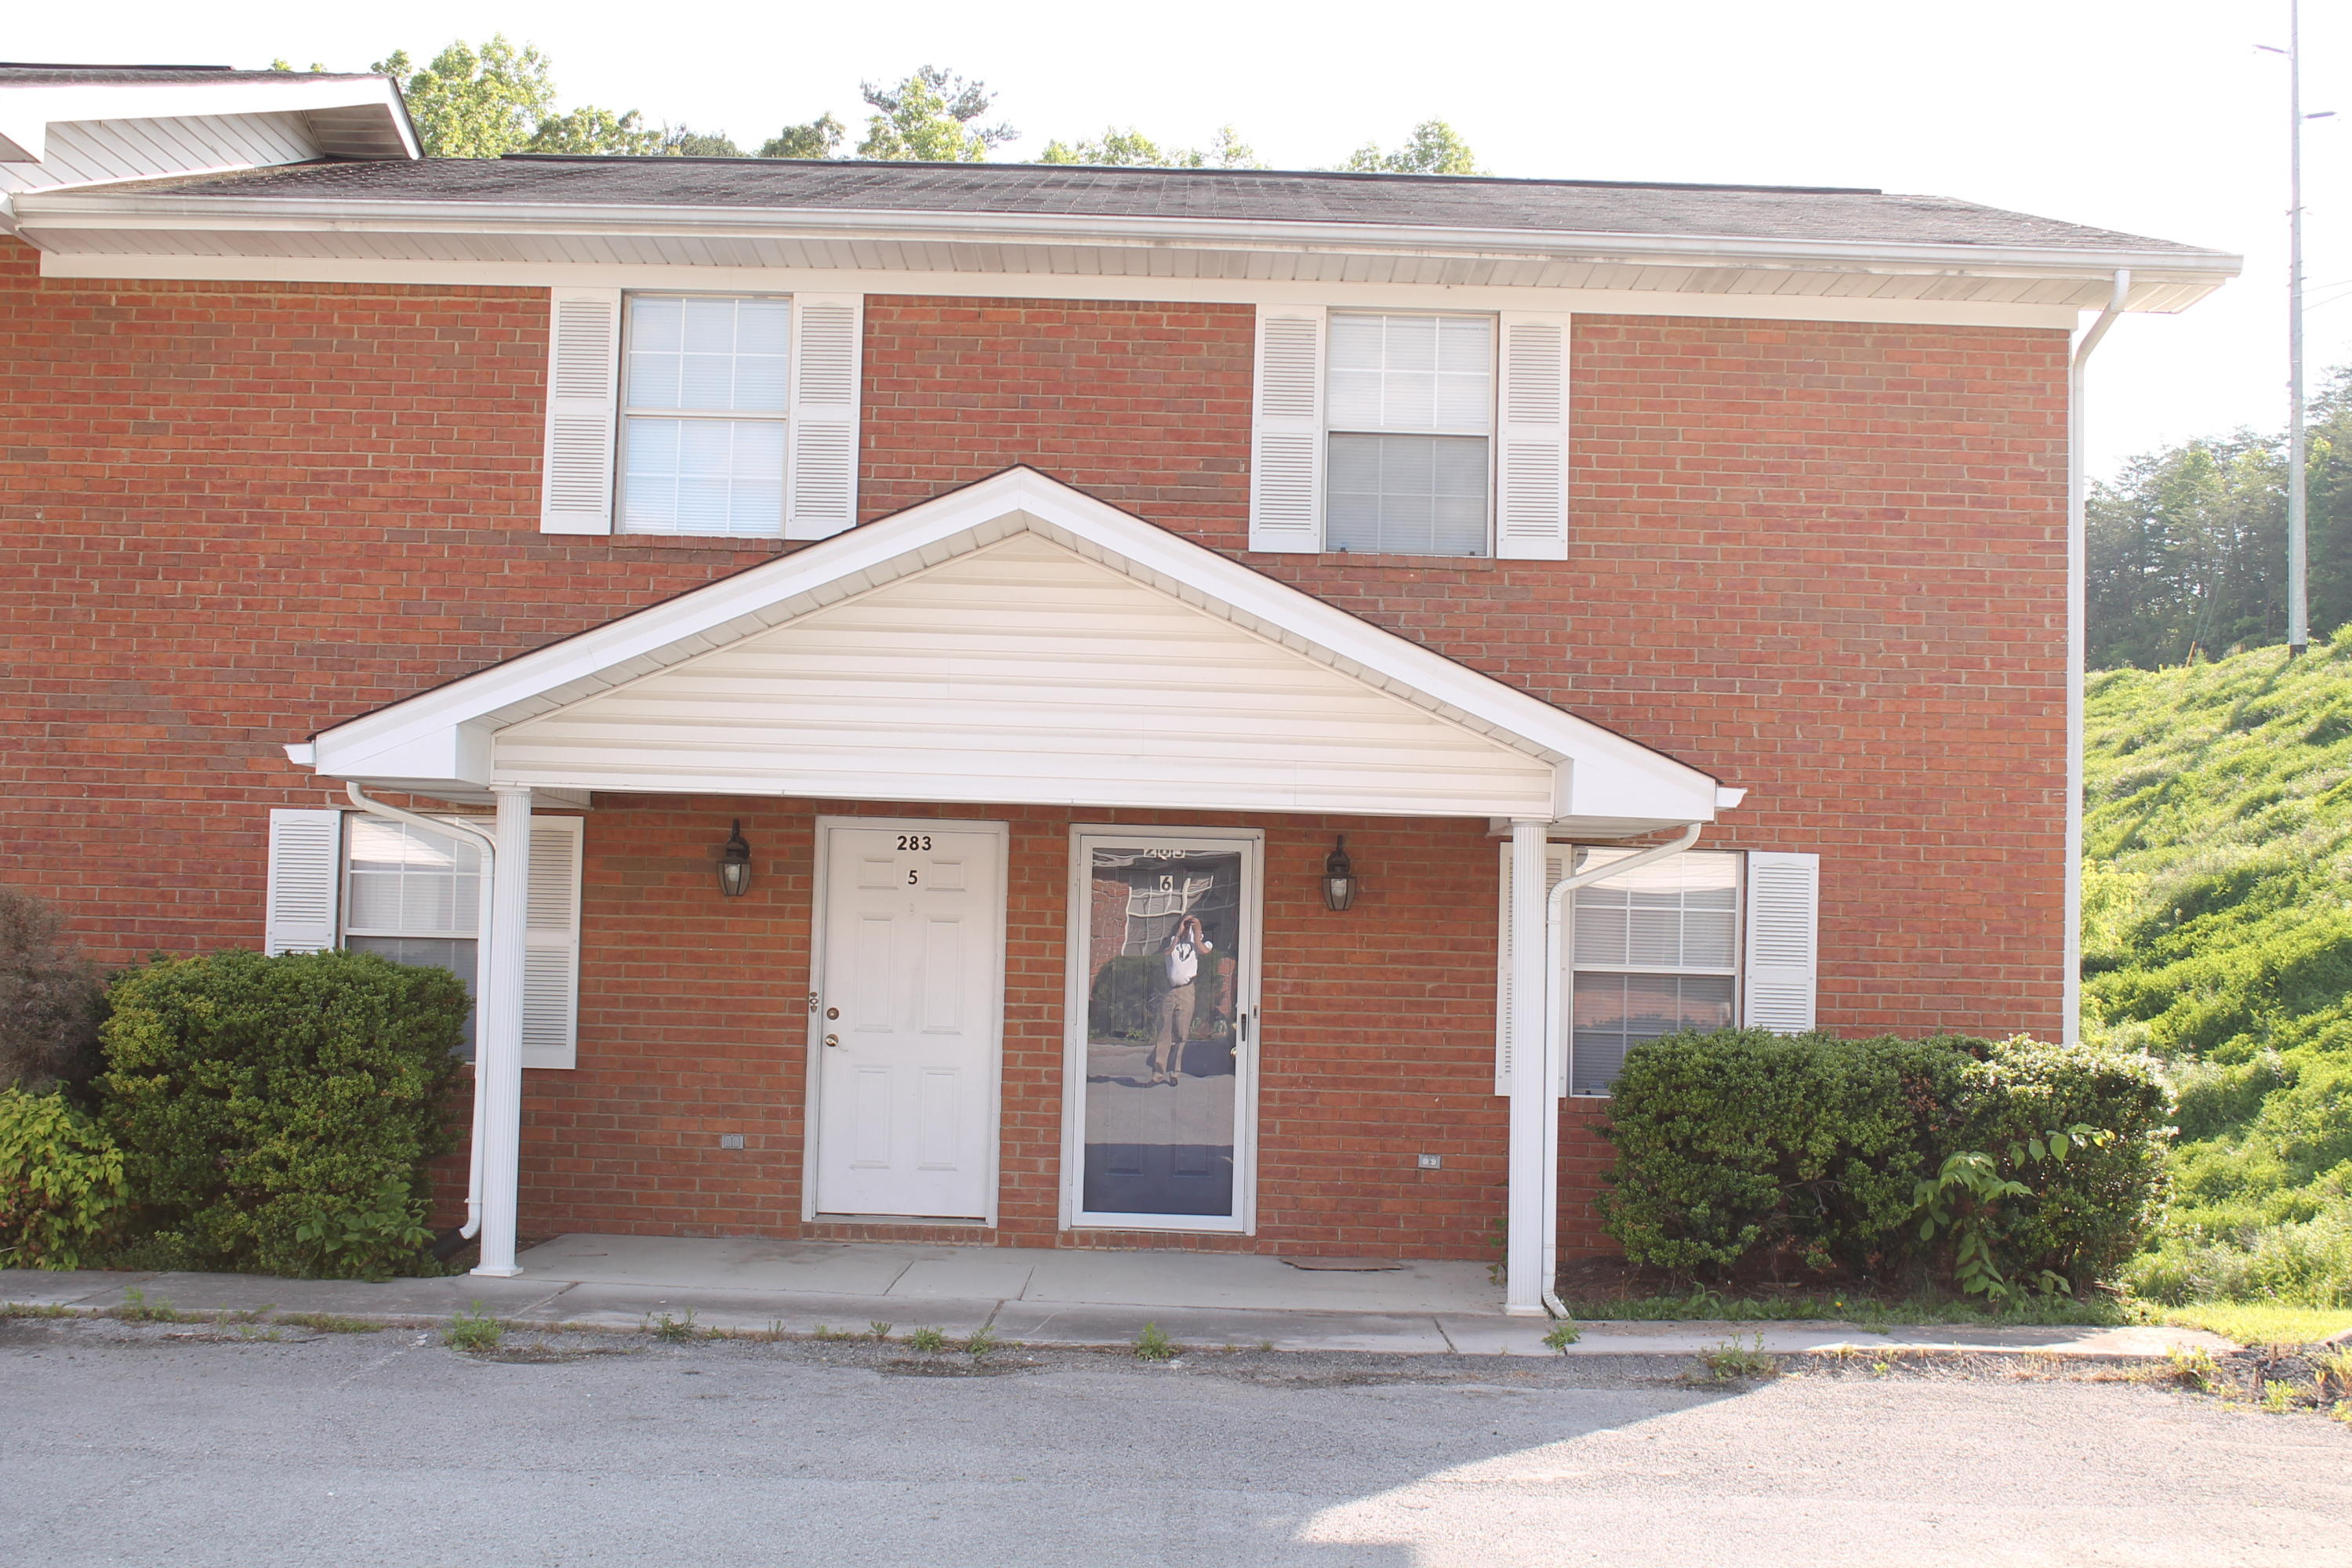 285 Main St, Maynardville, Tennessee 37807, 2 Bedrooms Bedrooms, ,1 BathroomBathrooms,Single Family,For Sale,Main,1028765